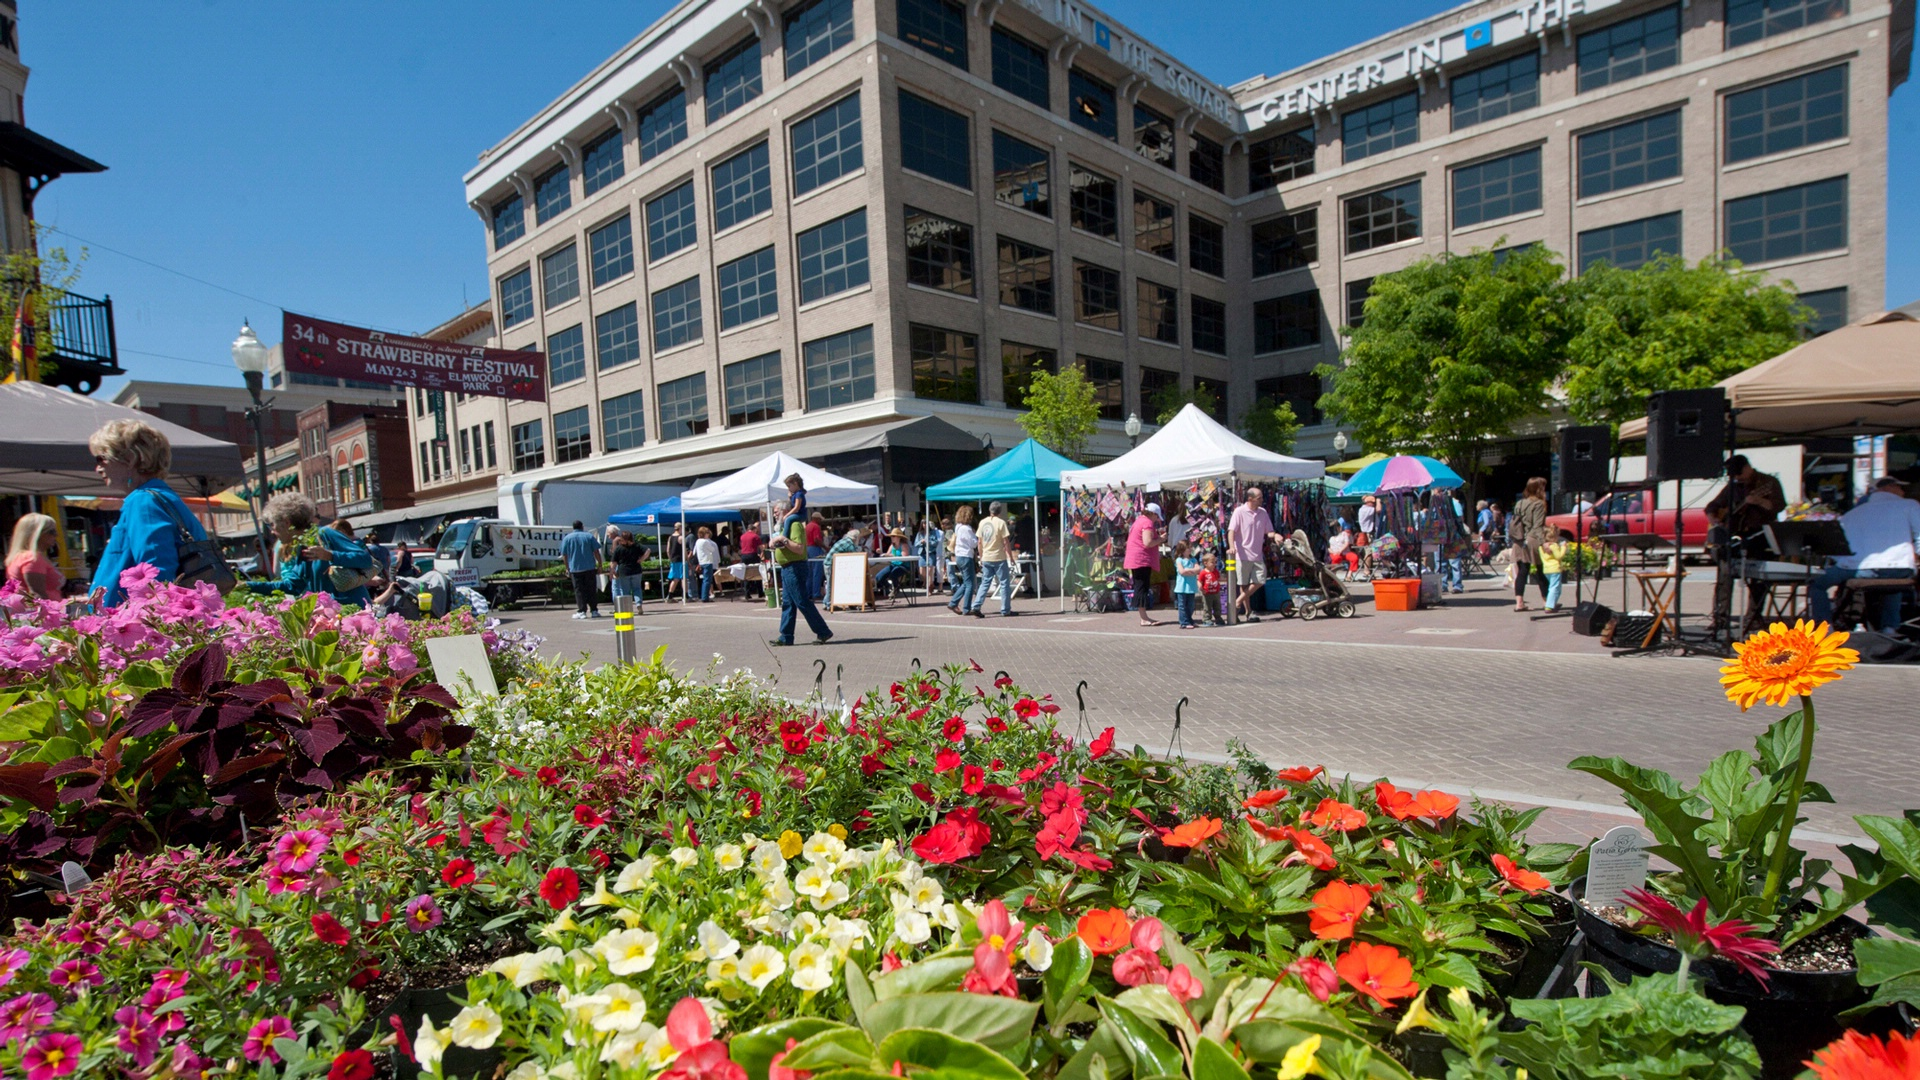 strawberry festival in downtown roanoke